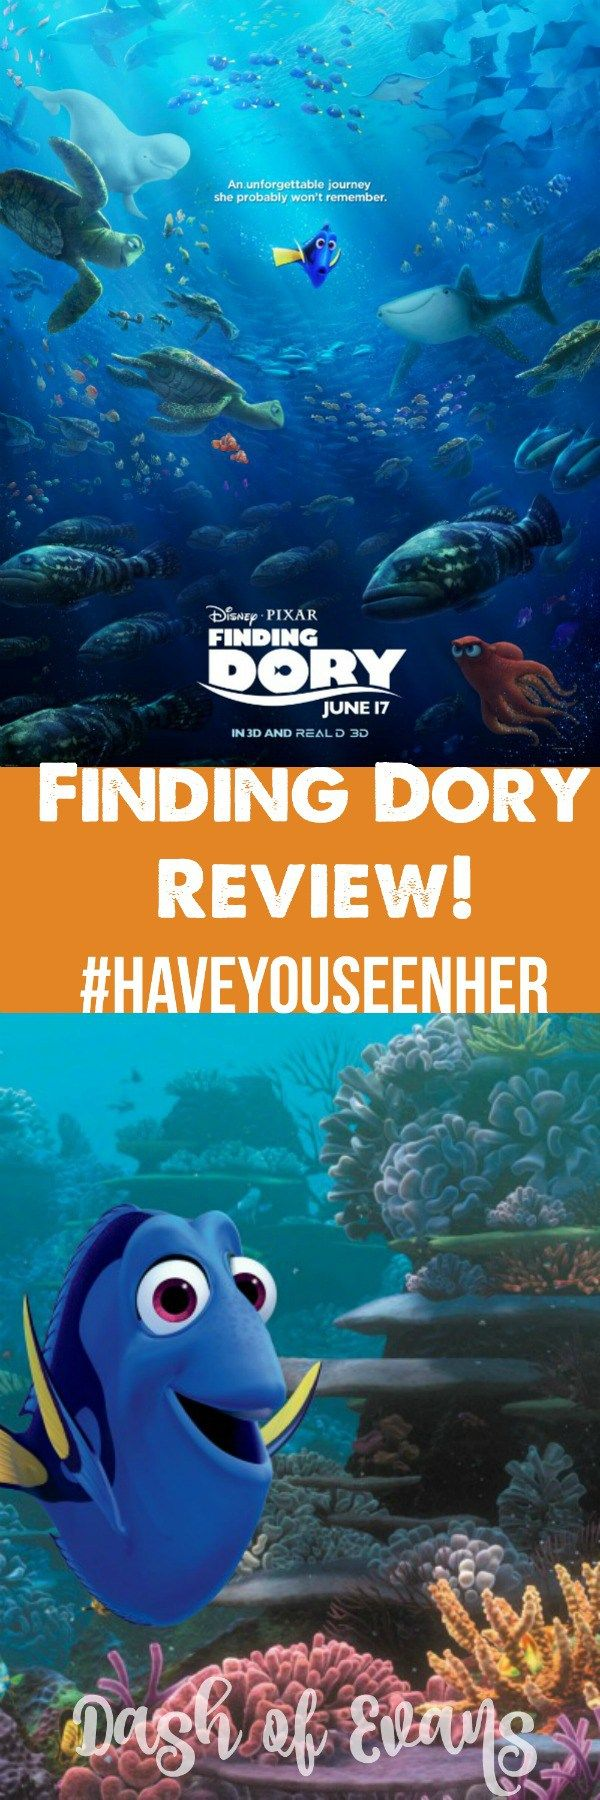 She's finally back: have you seen her? Check out Finding Dory in theaters NOW. Review by @DashOfEvans #Disney #FindingDory #HaveYouSeenHer